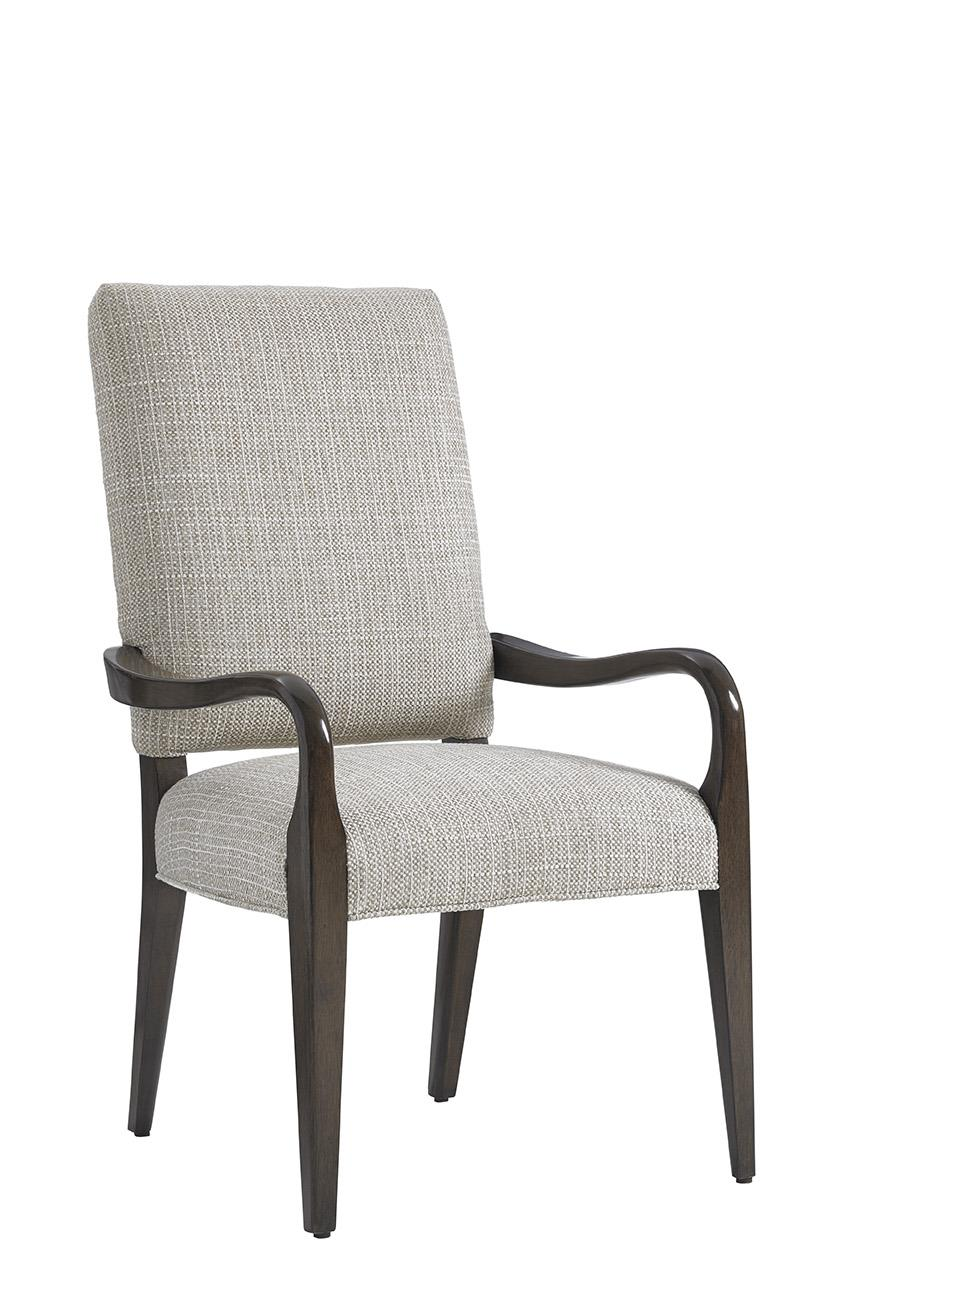 Lexington LAUREL CANYON Sierra Upholstered Arm Chair (Married Fabr) - Item Number: 721-881-01